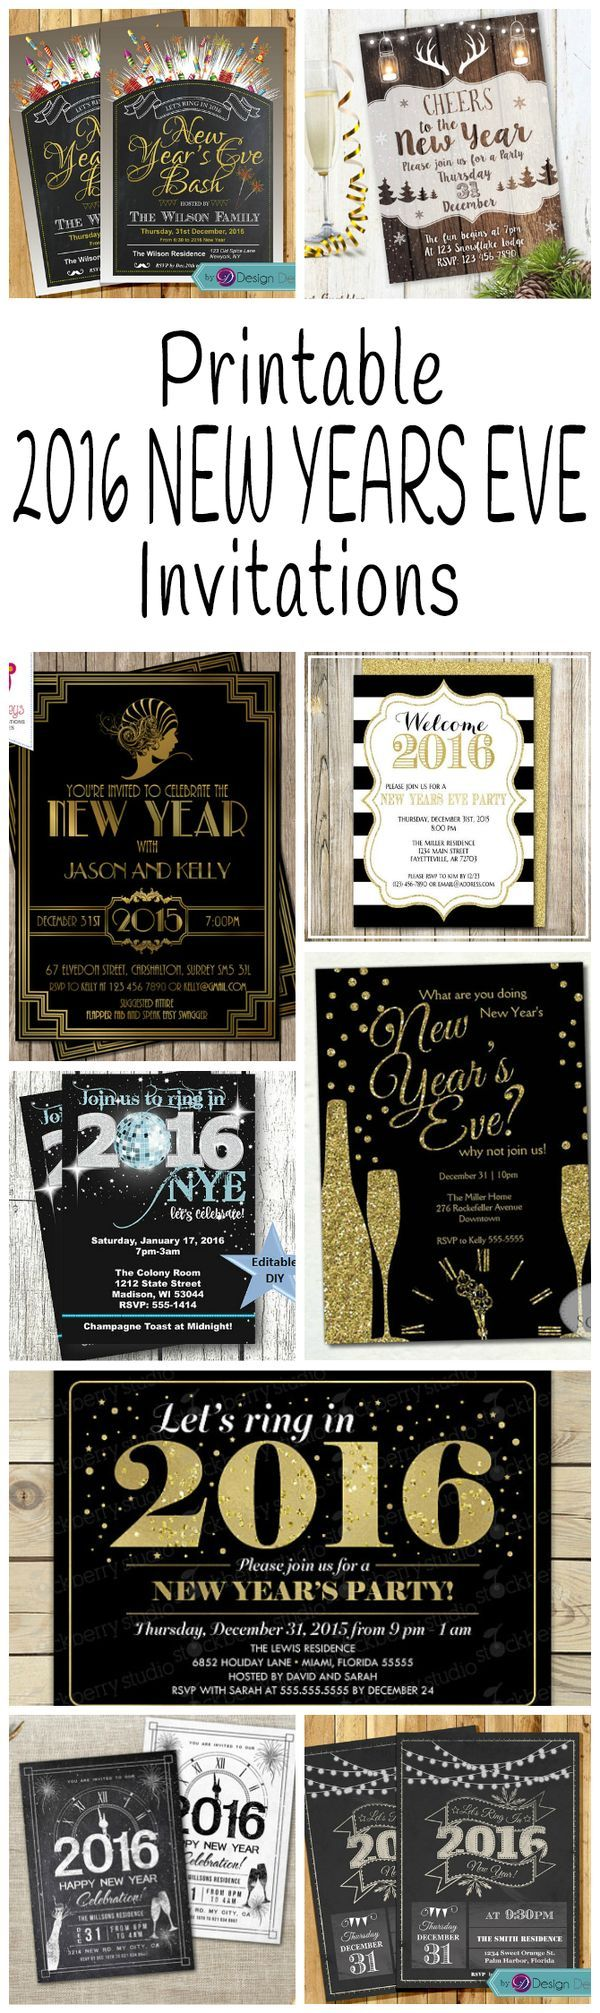 DIY Printable 2016 New Years Eve Party Invitations